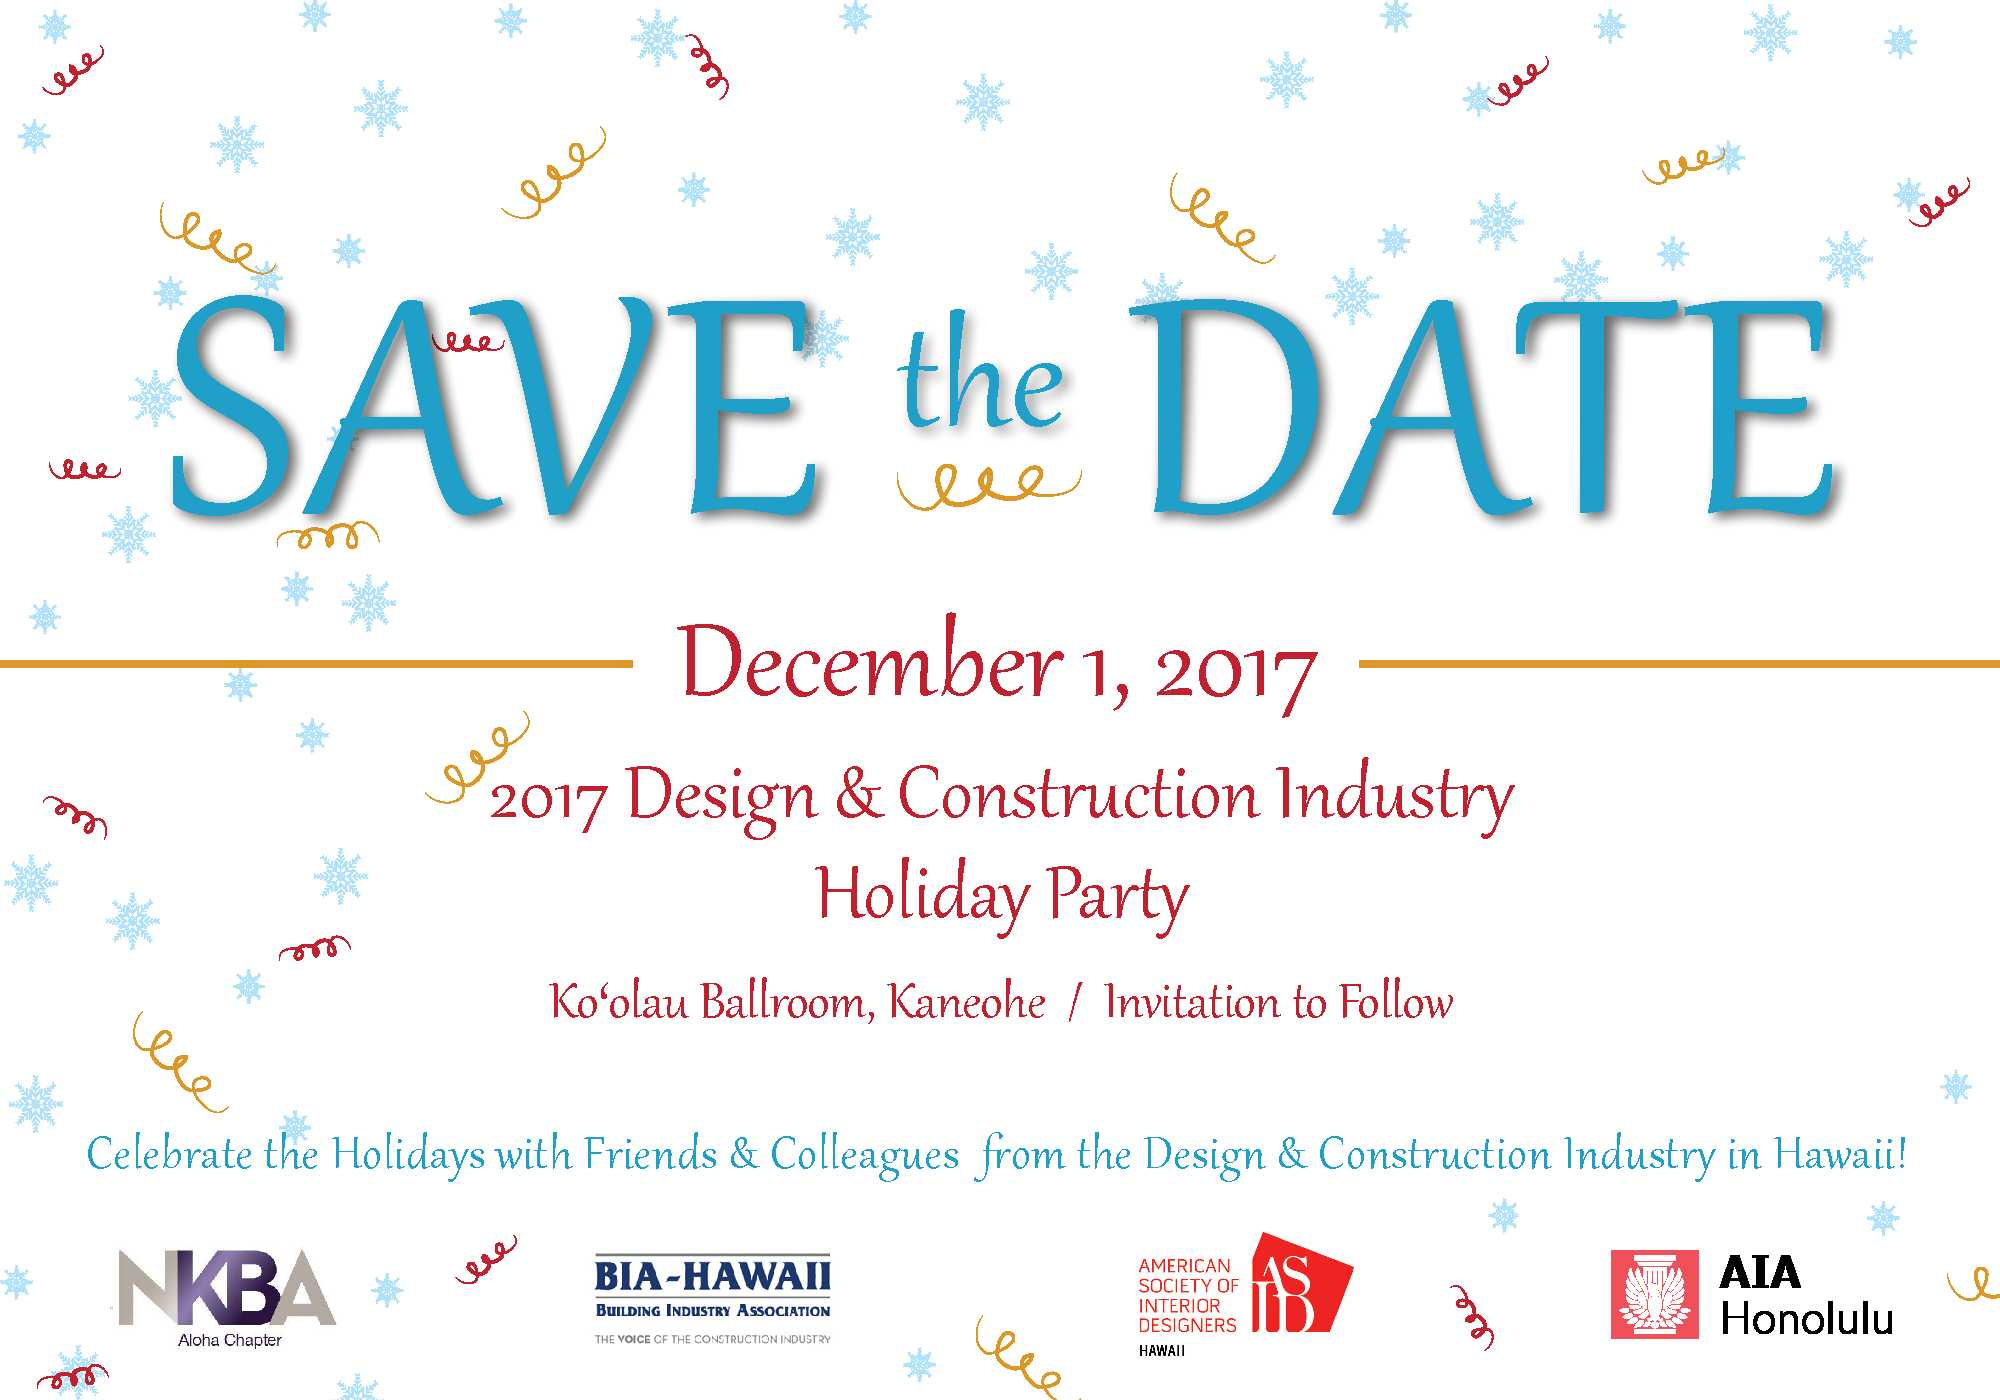 Stay Tuned 2nd Annual Holiday Party